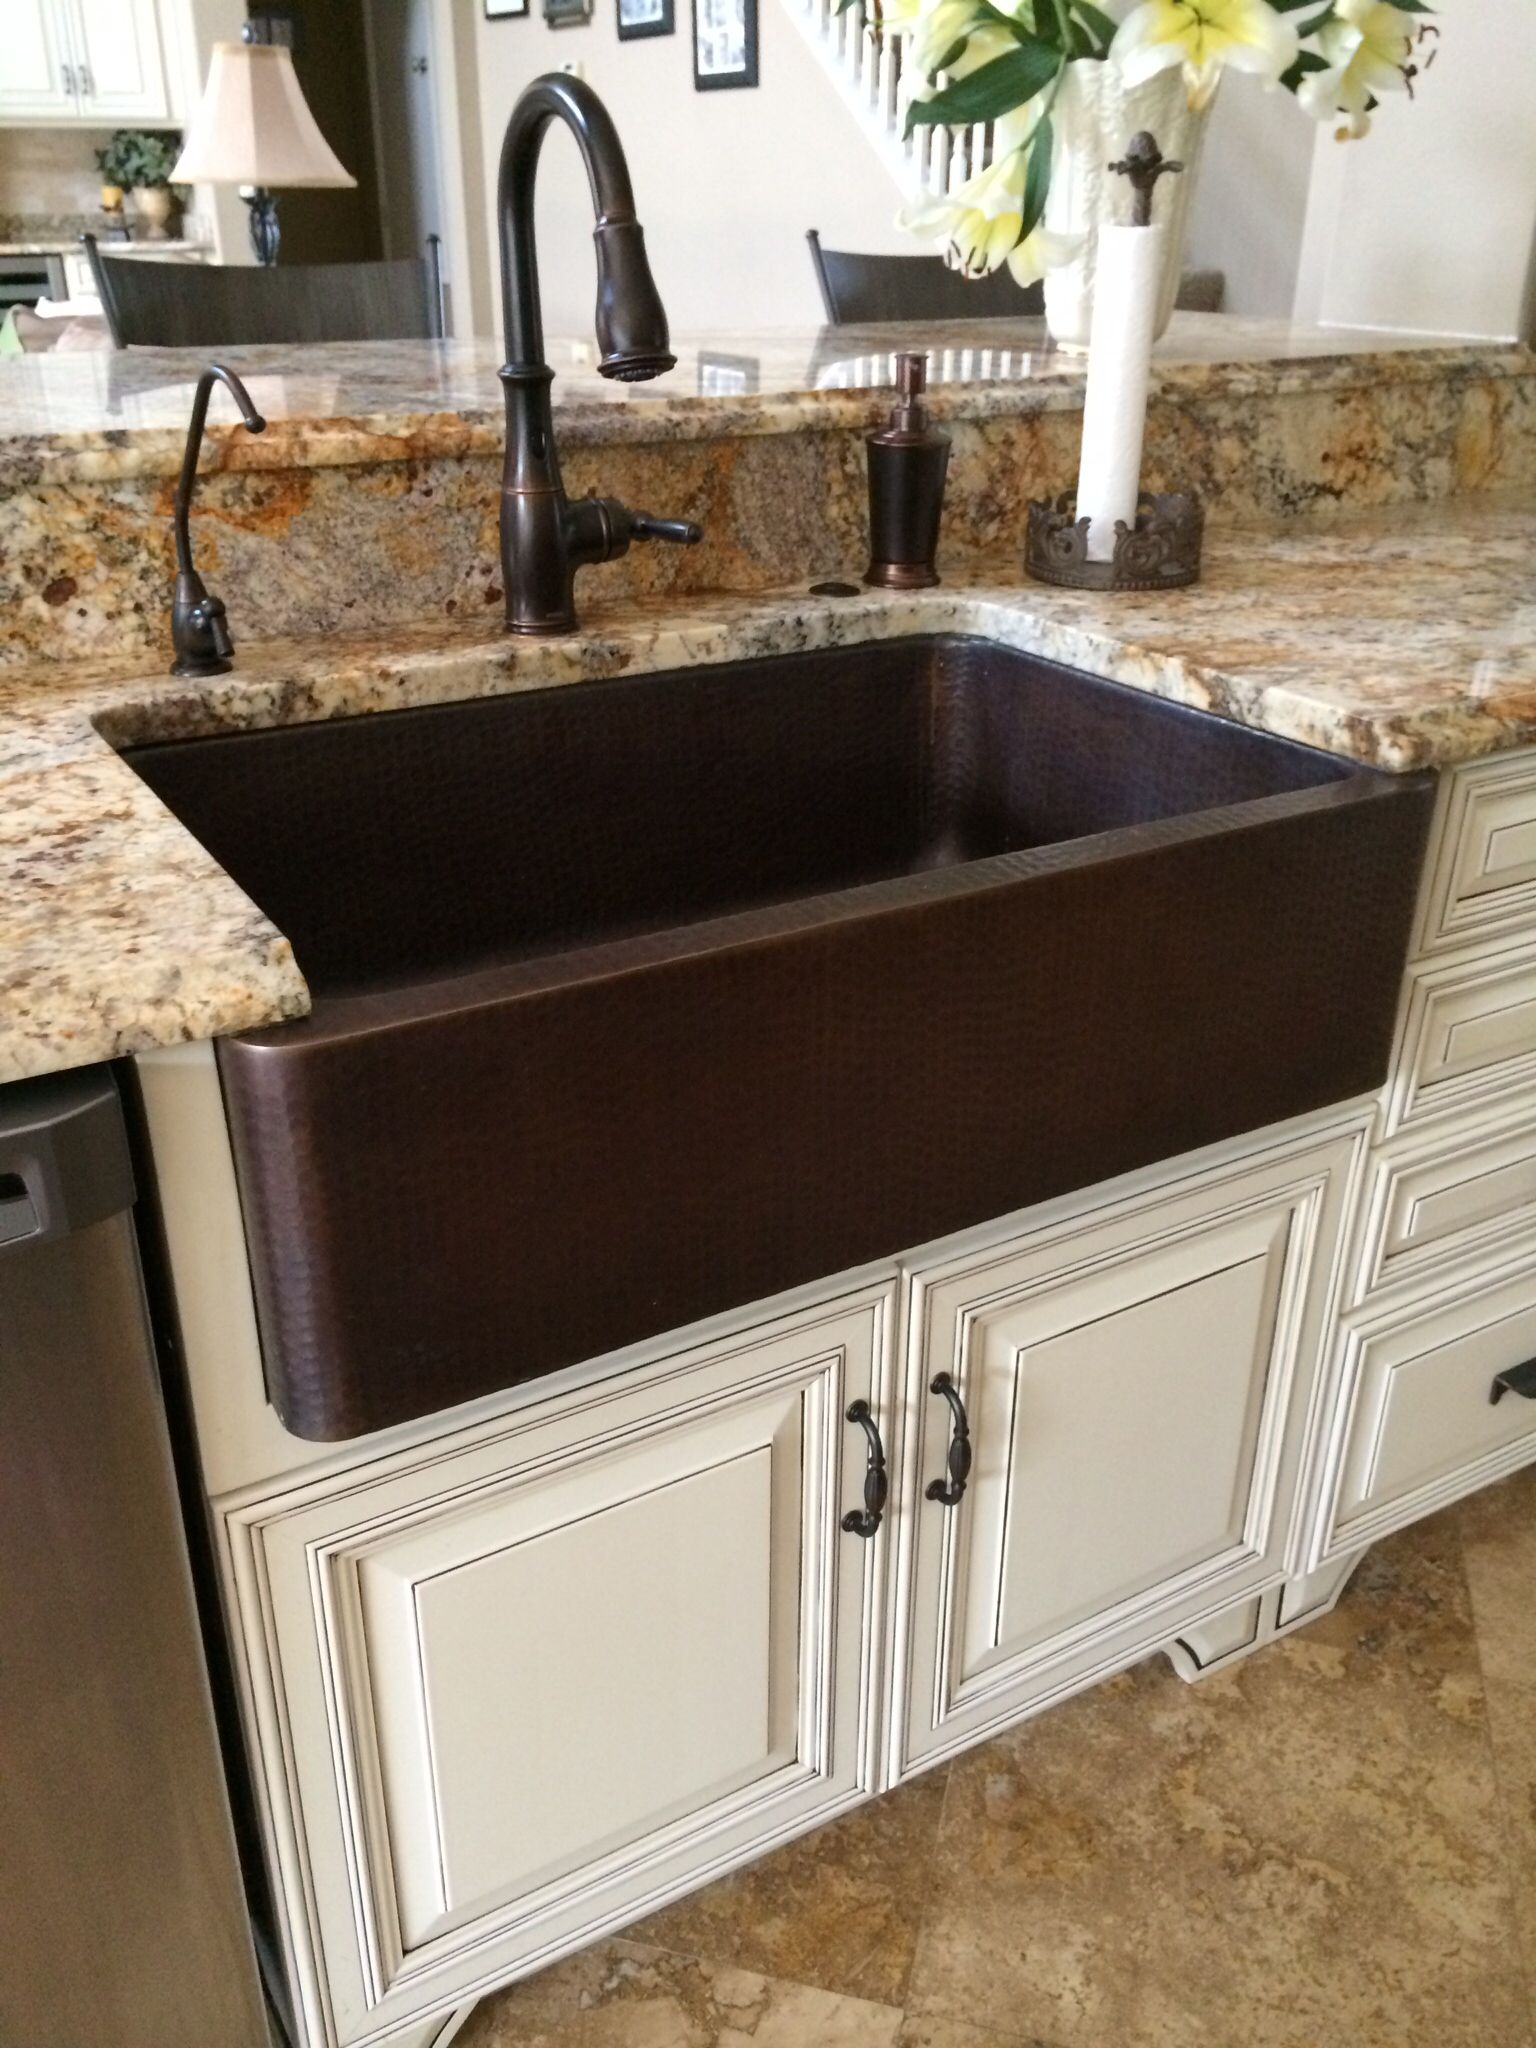 charming Oil Rubbed Bronze Faucet Kitchen #9: Hammered copper farm sink, moen oil rubbed bronze touch less faucet.